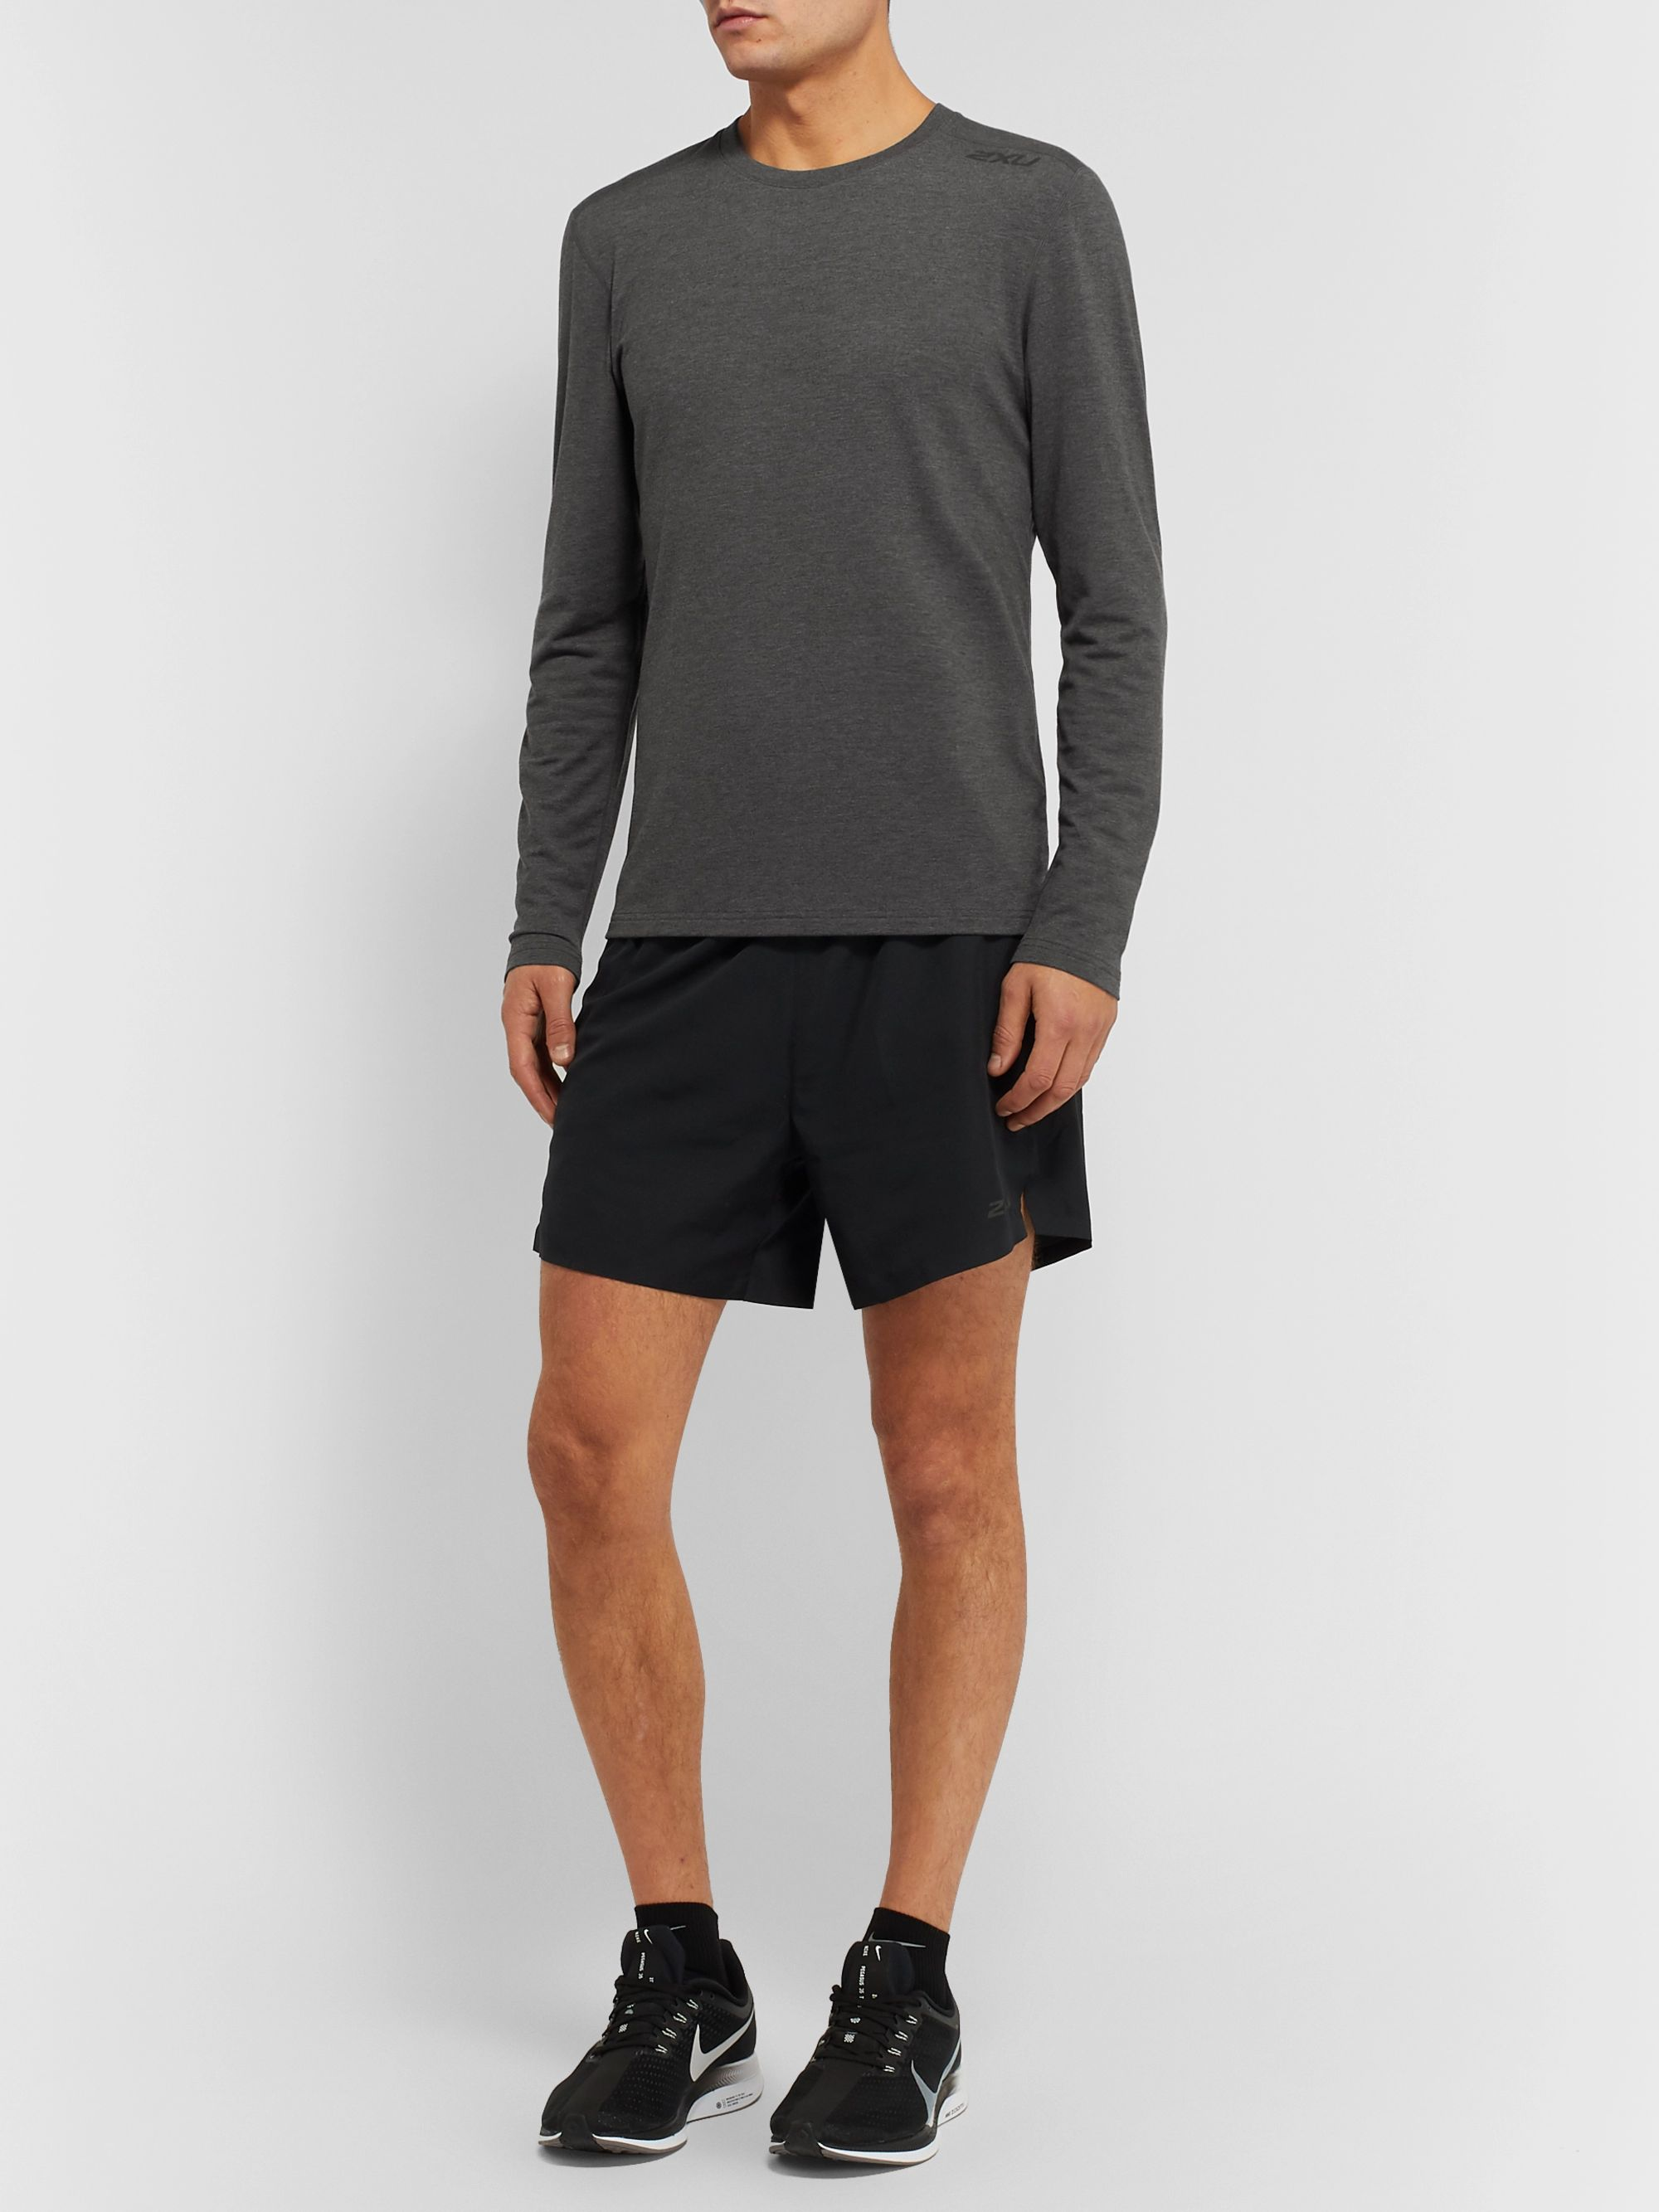 2XU Heat Mélange Stretch-Jersey T-Shirt